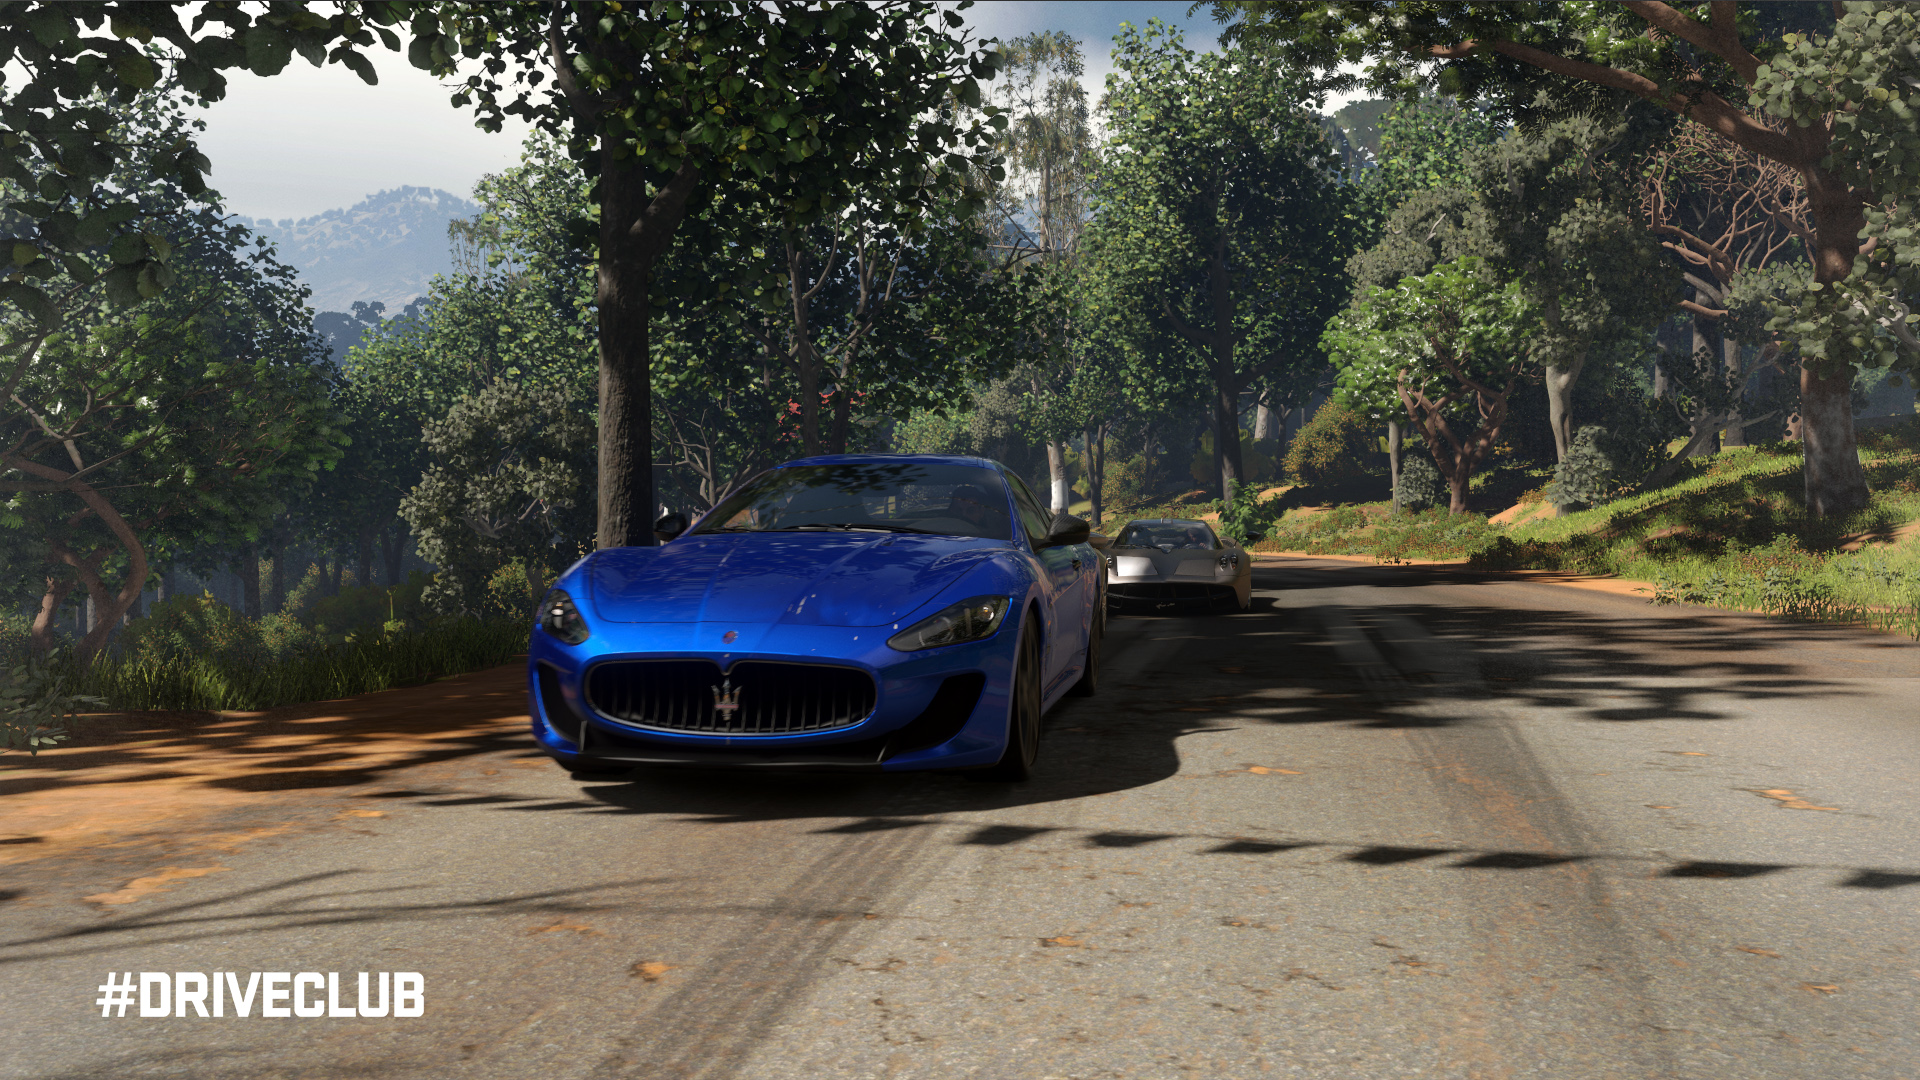 DRIVECLUB_GC_02